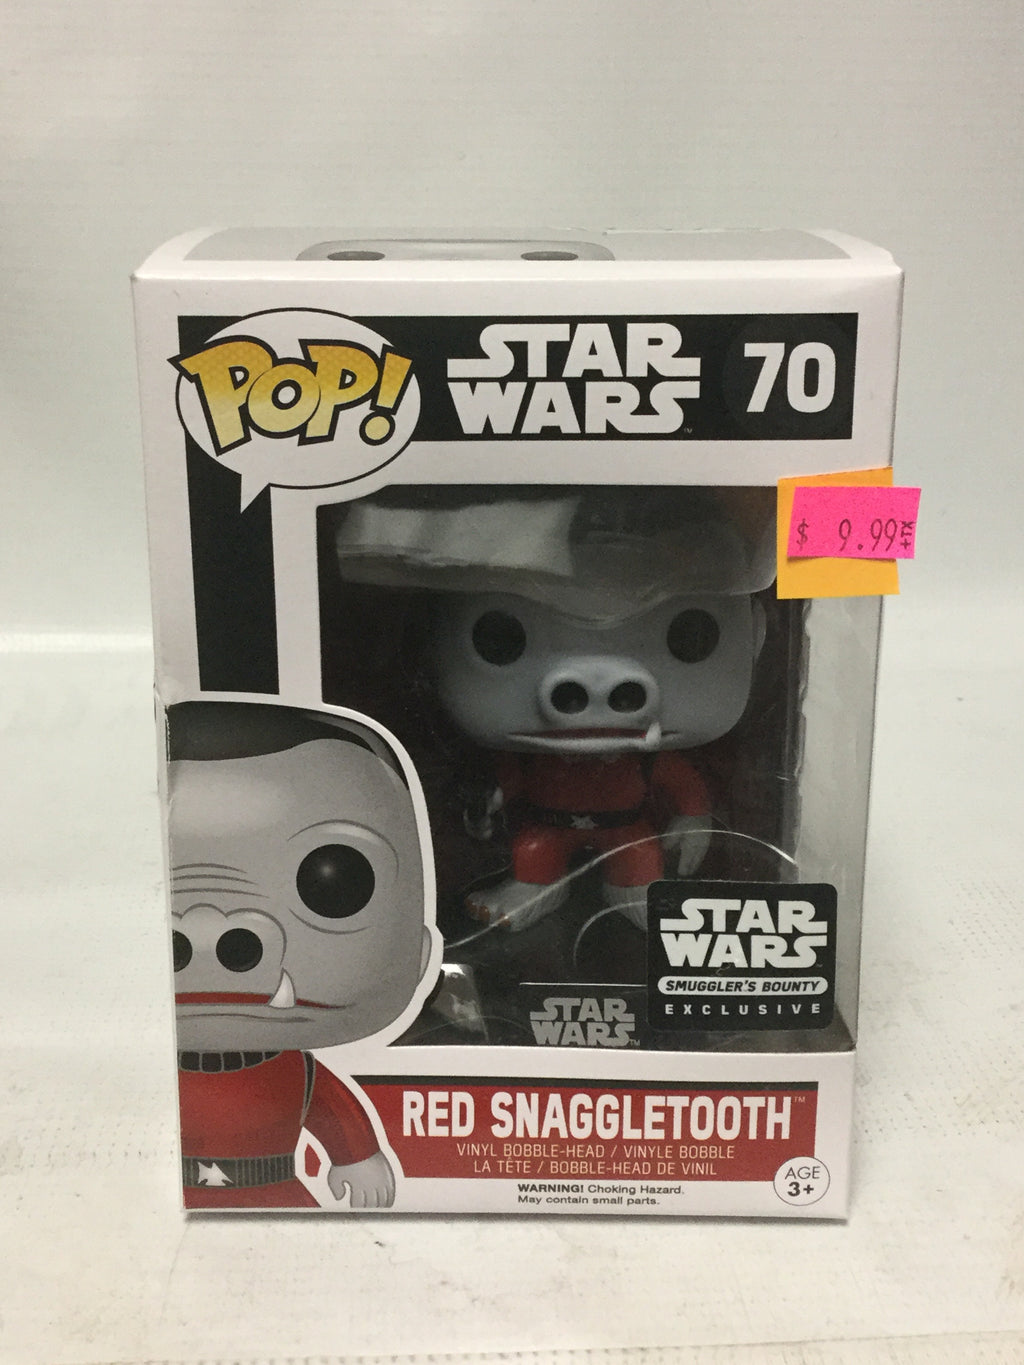 Funko POP! Star Wars 70 Red Snaggletooth Star Wars Smuggler's Bounty Exclusive